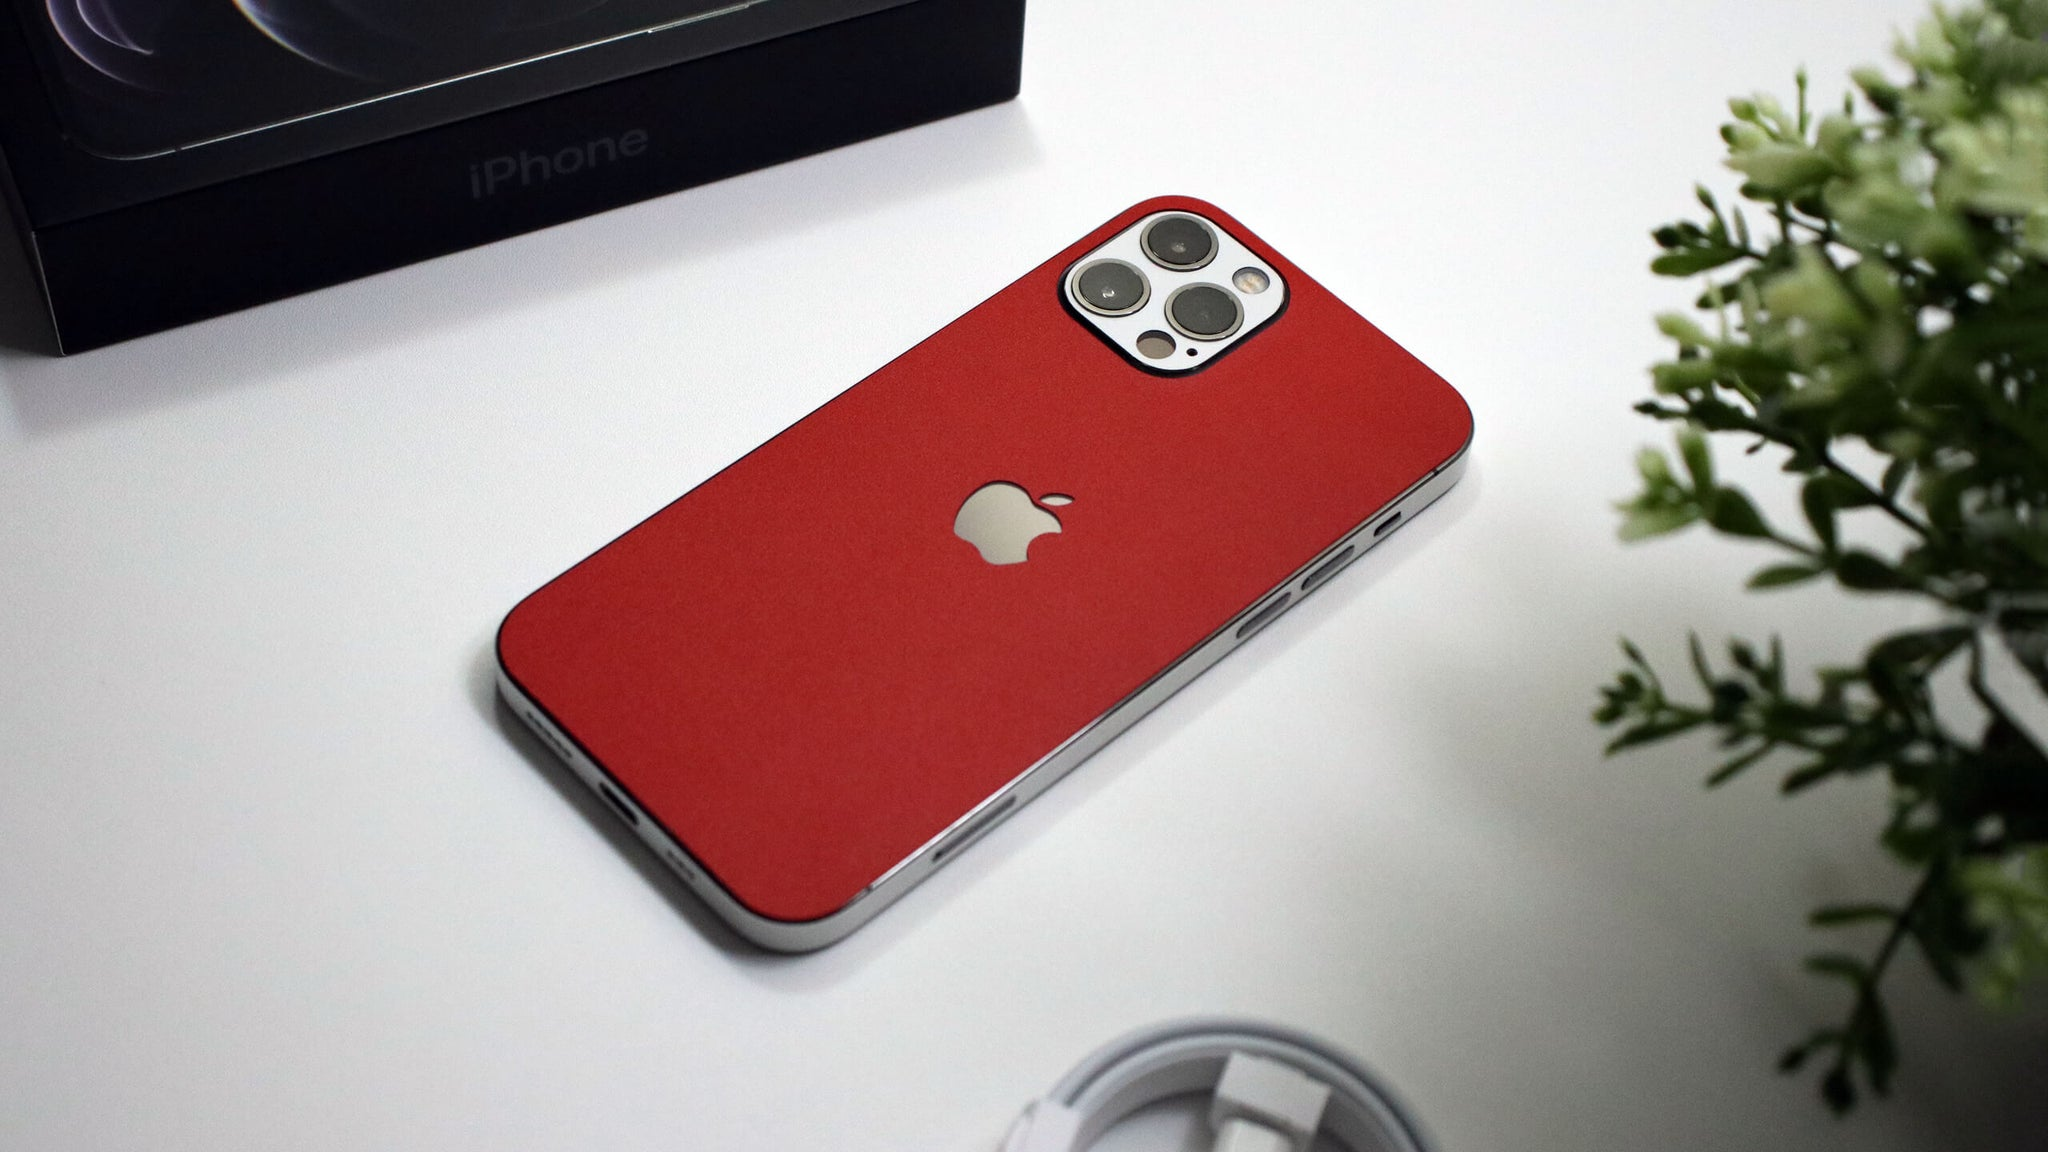 iPhone 12 Pro Textured Matt Red Skins